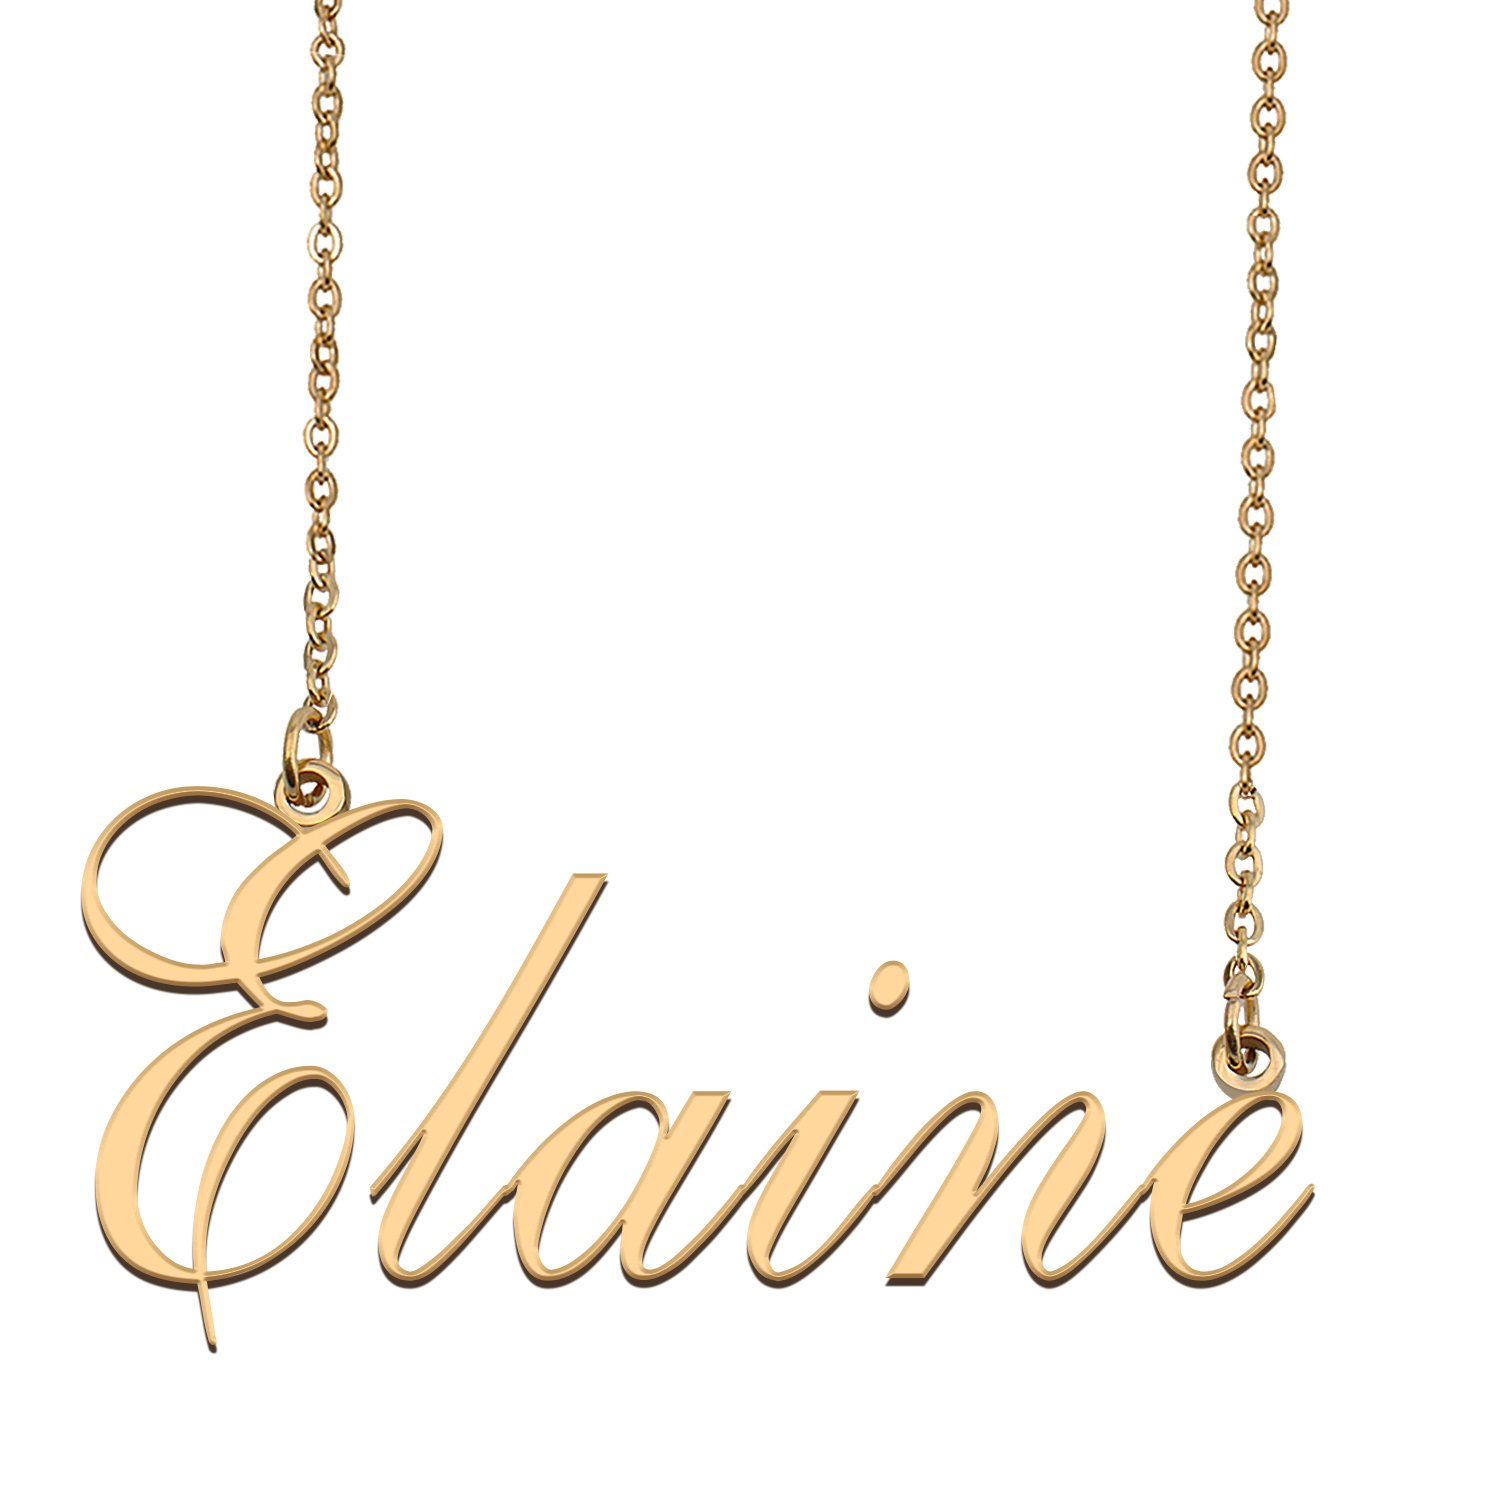 Customized Name Necklace 18K Gold Plated Jewelry Gift for Girlfriend for Her Karsyn